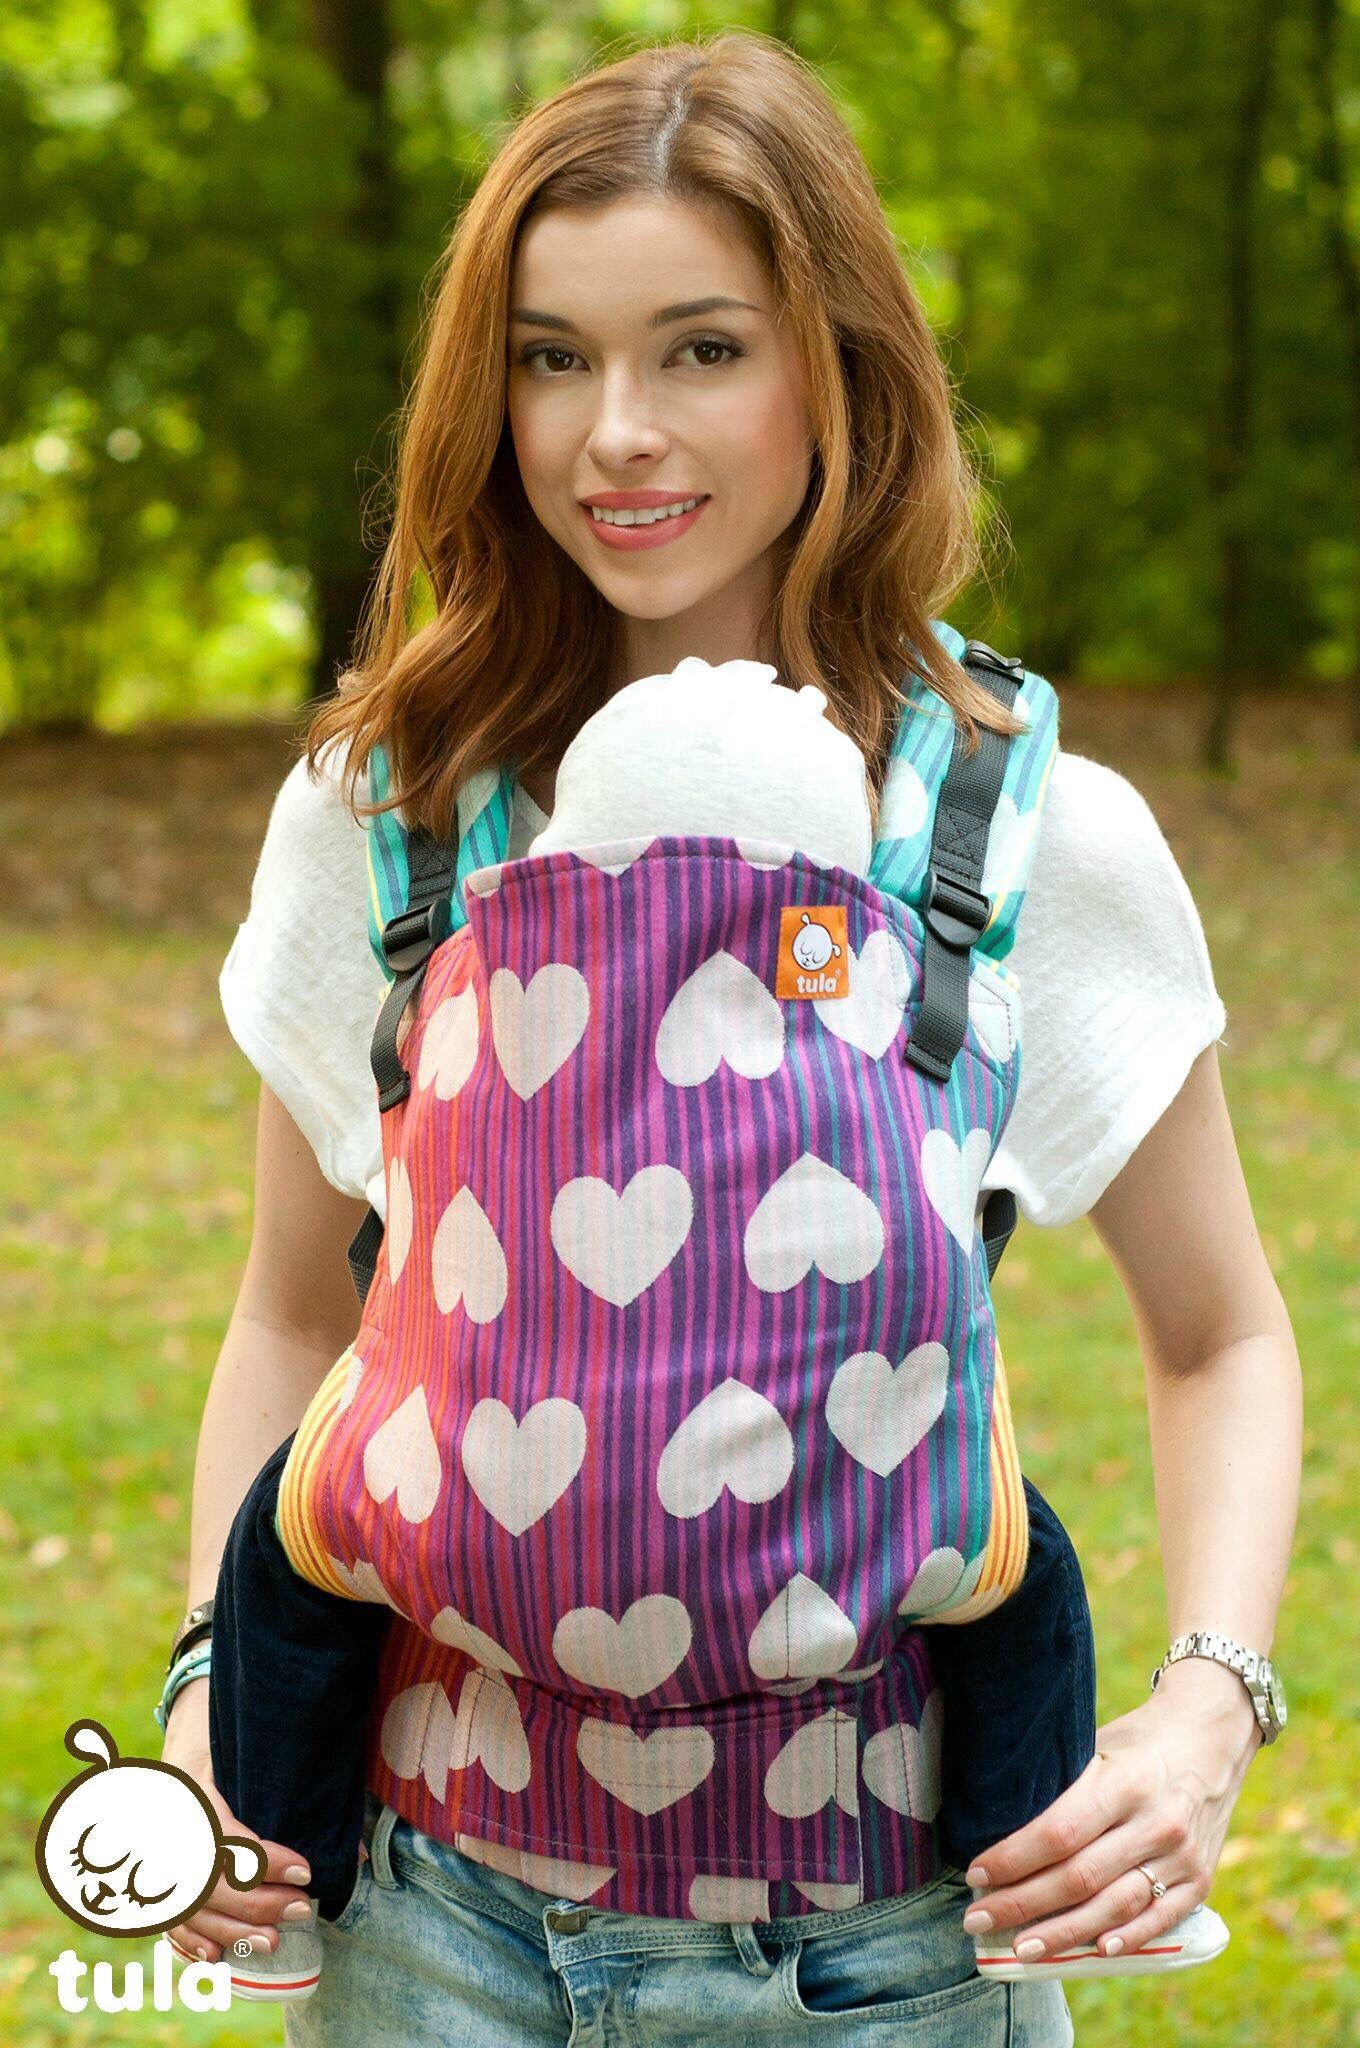 008a6498afd ... Shop wrap conversion baby carriers today! Tula Love Athena - coming  soon!